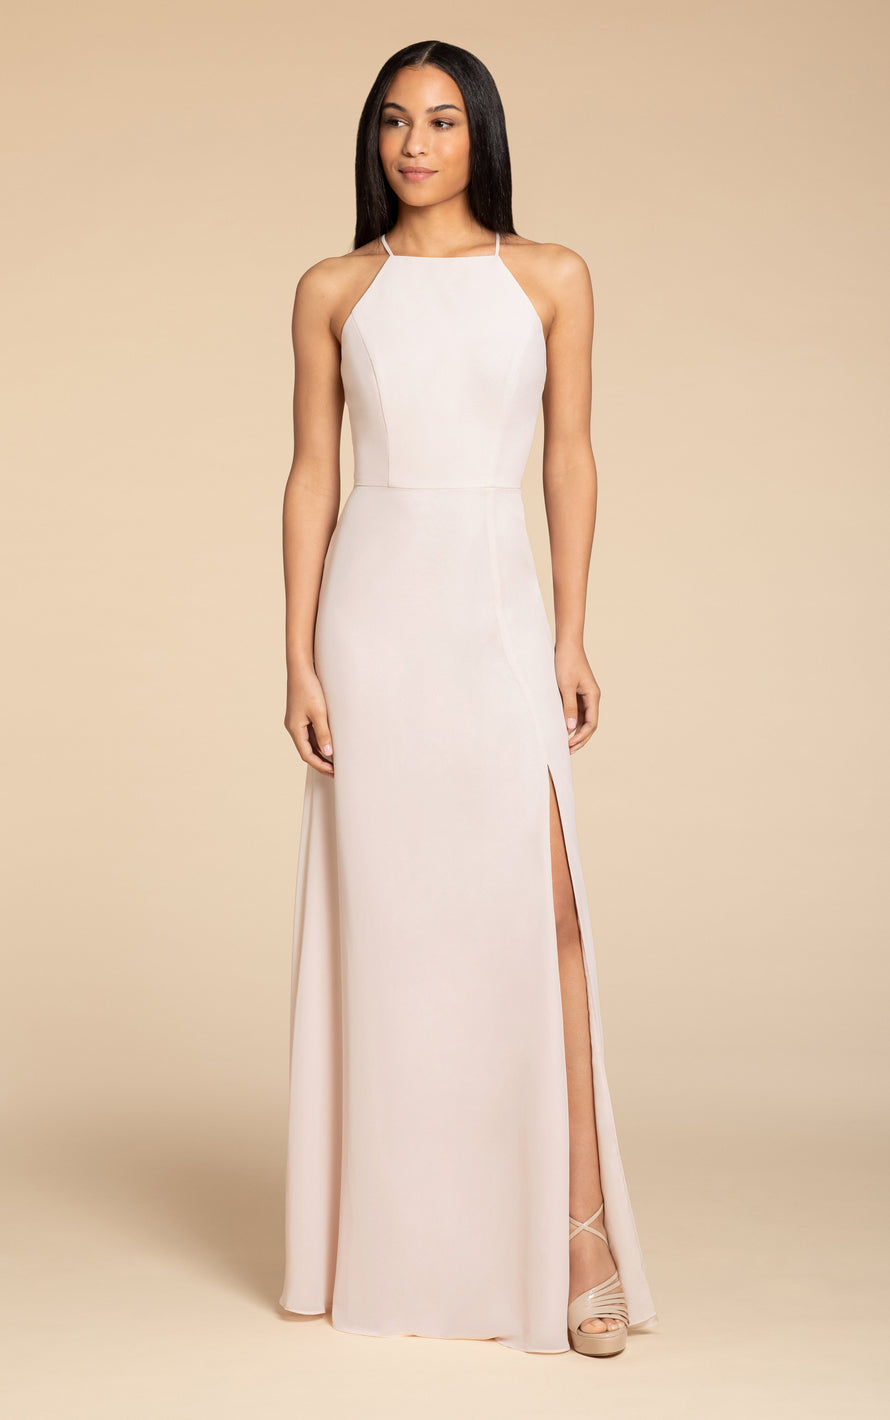 Hayley Paige Occasions Bridesmaid Dress - 5918